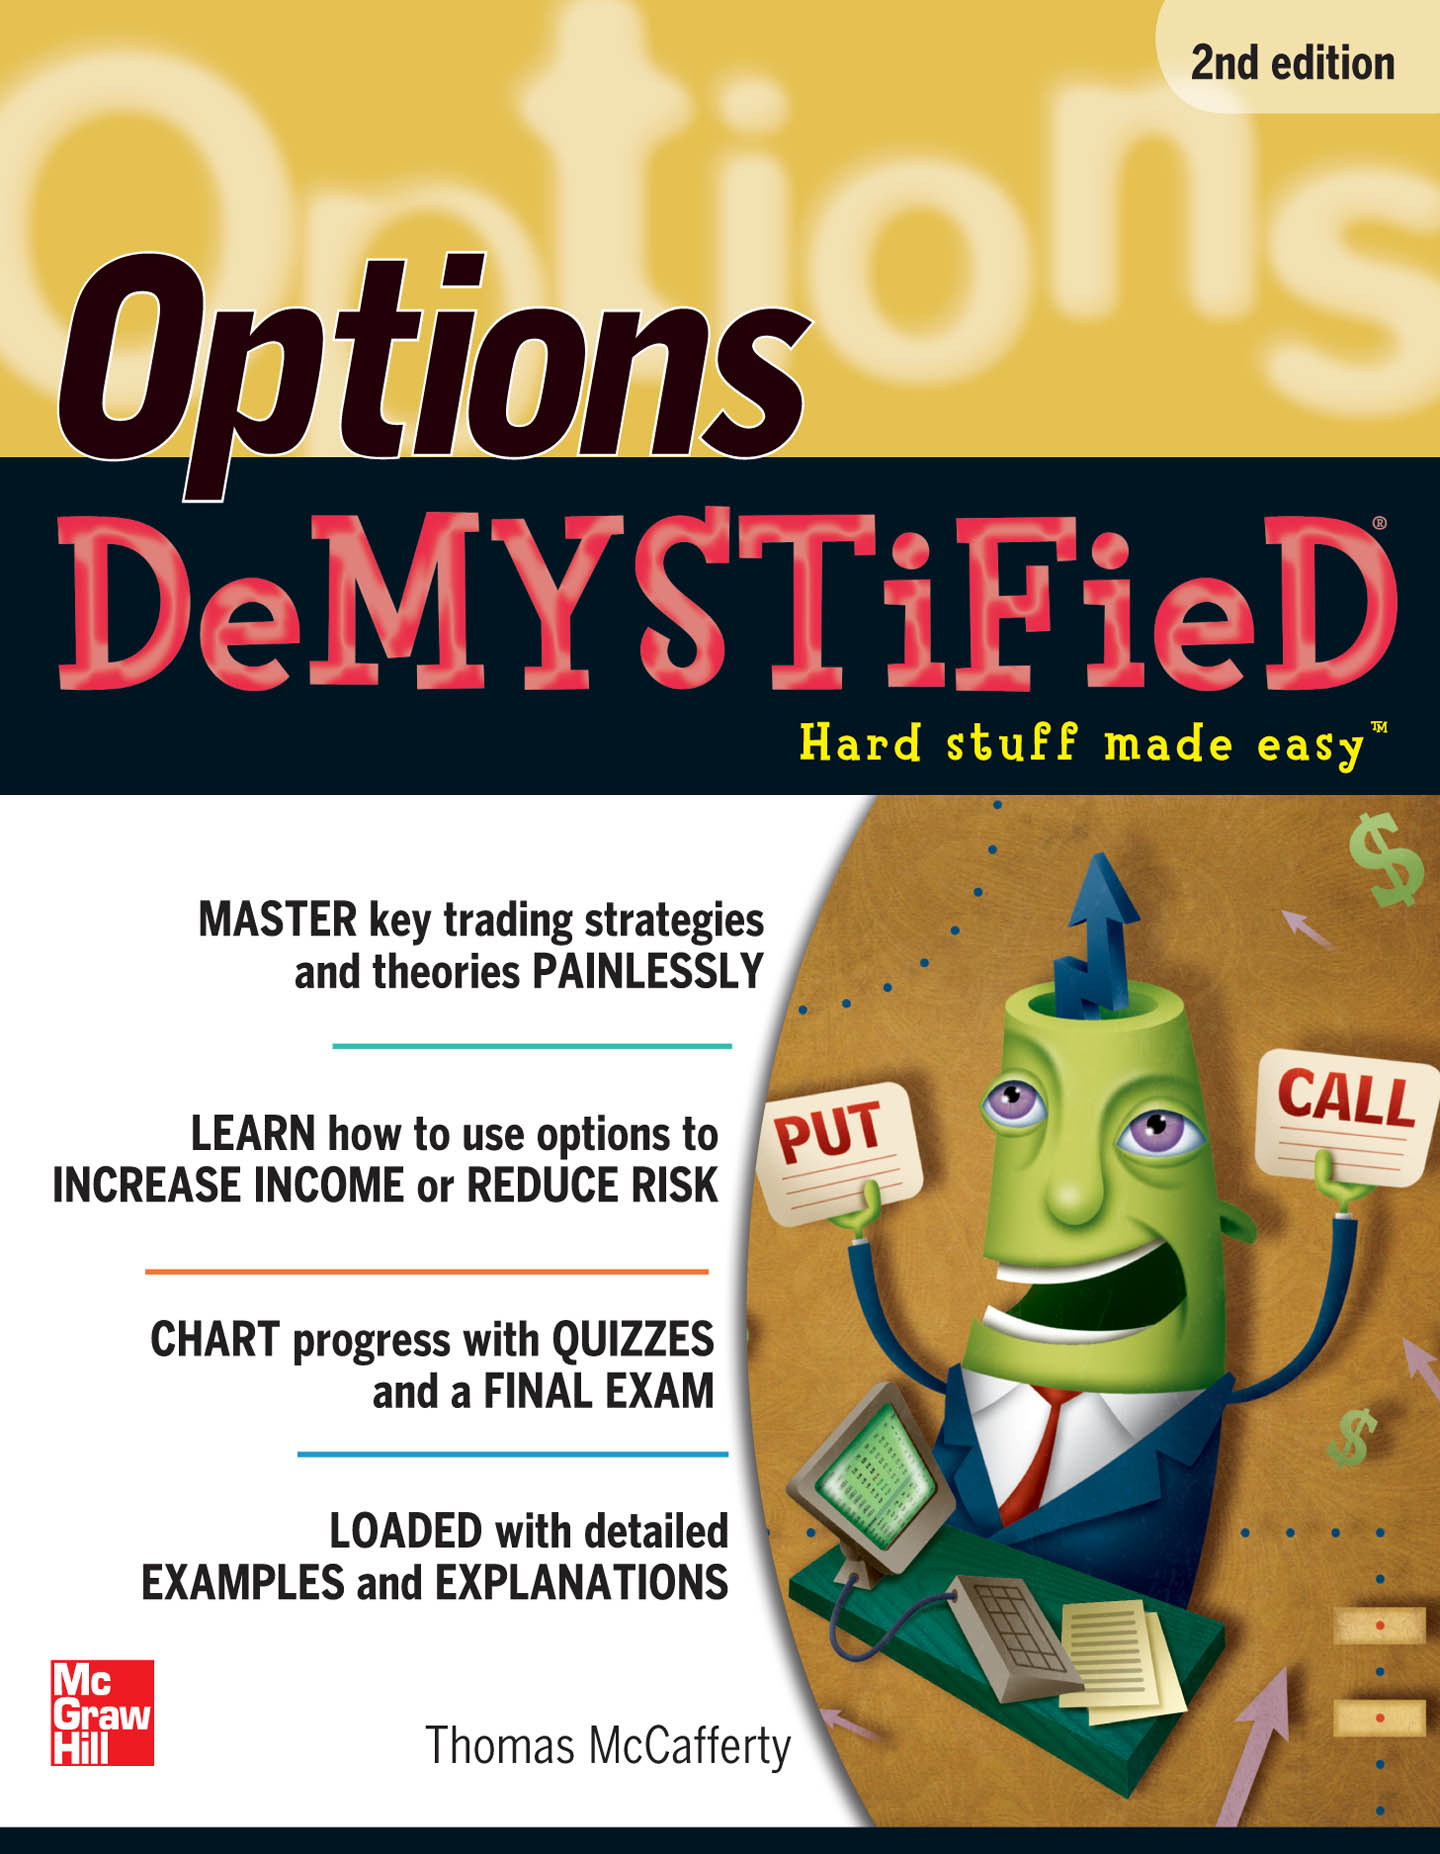 Download Ebook Options DeMYSTiFieD, Second Edition (2nd ed.) by Thomas A. McCafferty Pdf